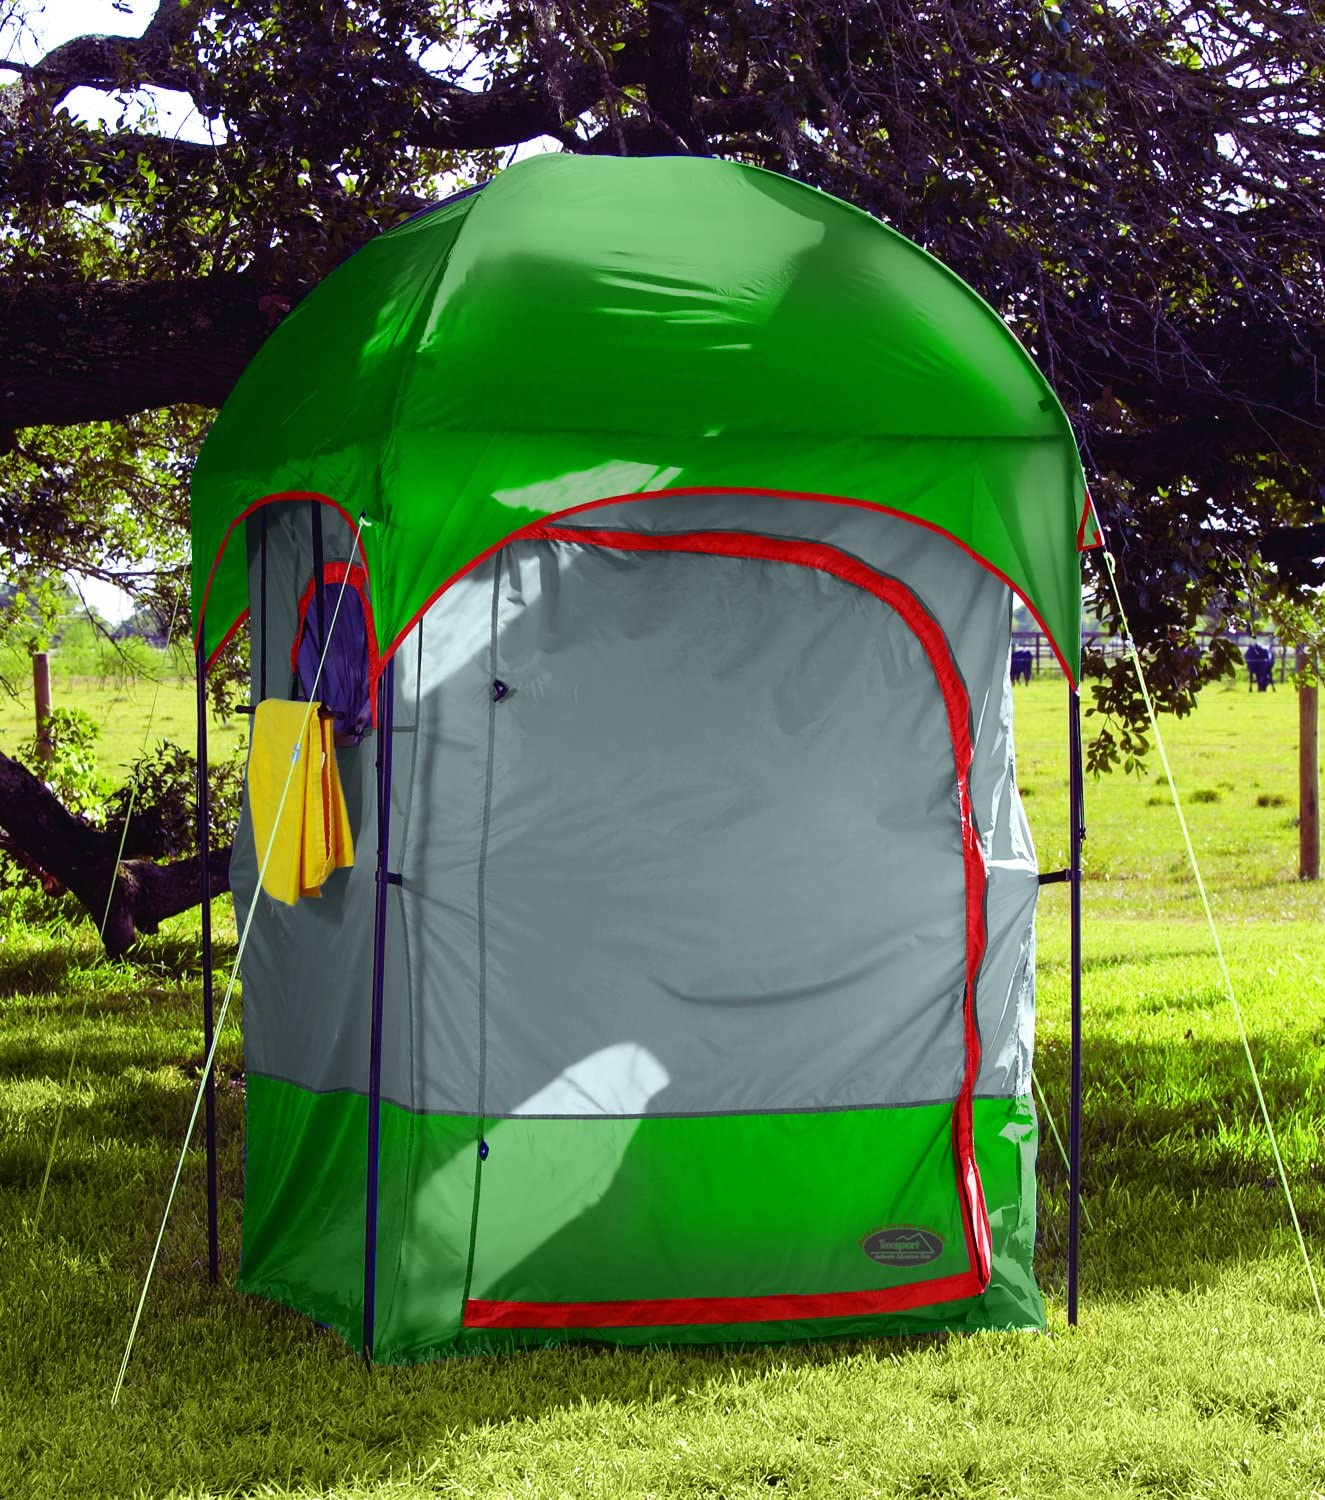 Texsport Instant Portable Outdoor Camping Shower Privacy Shelter Changing Room : Portable Camping Shower Gear : Sports & Outdoors